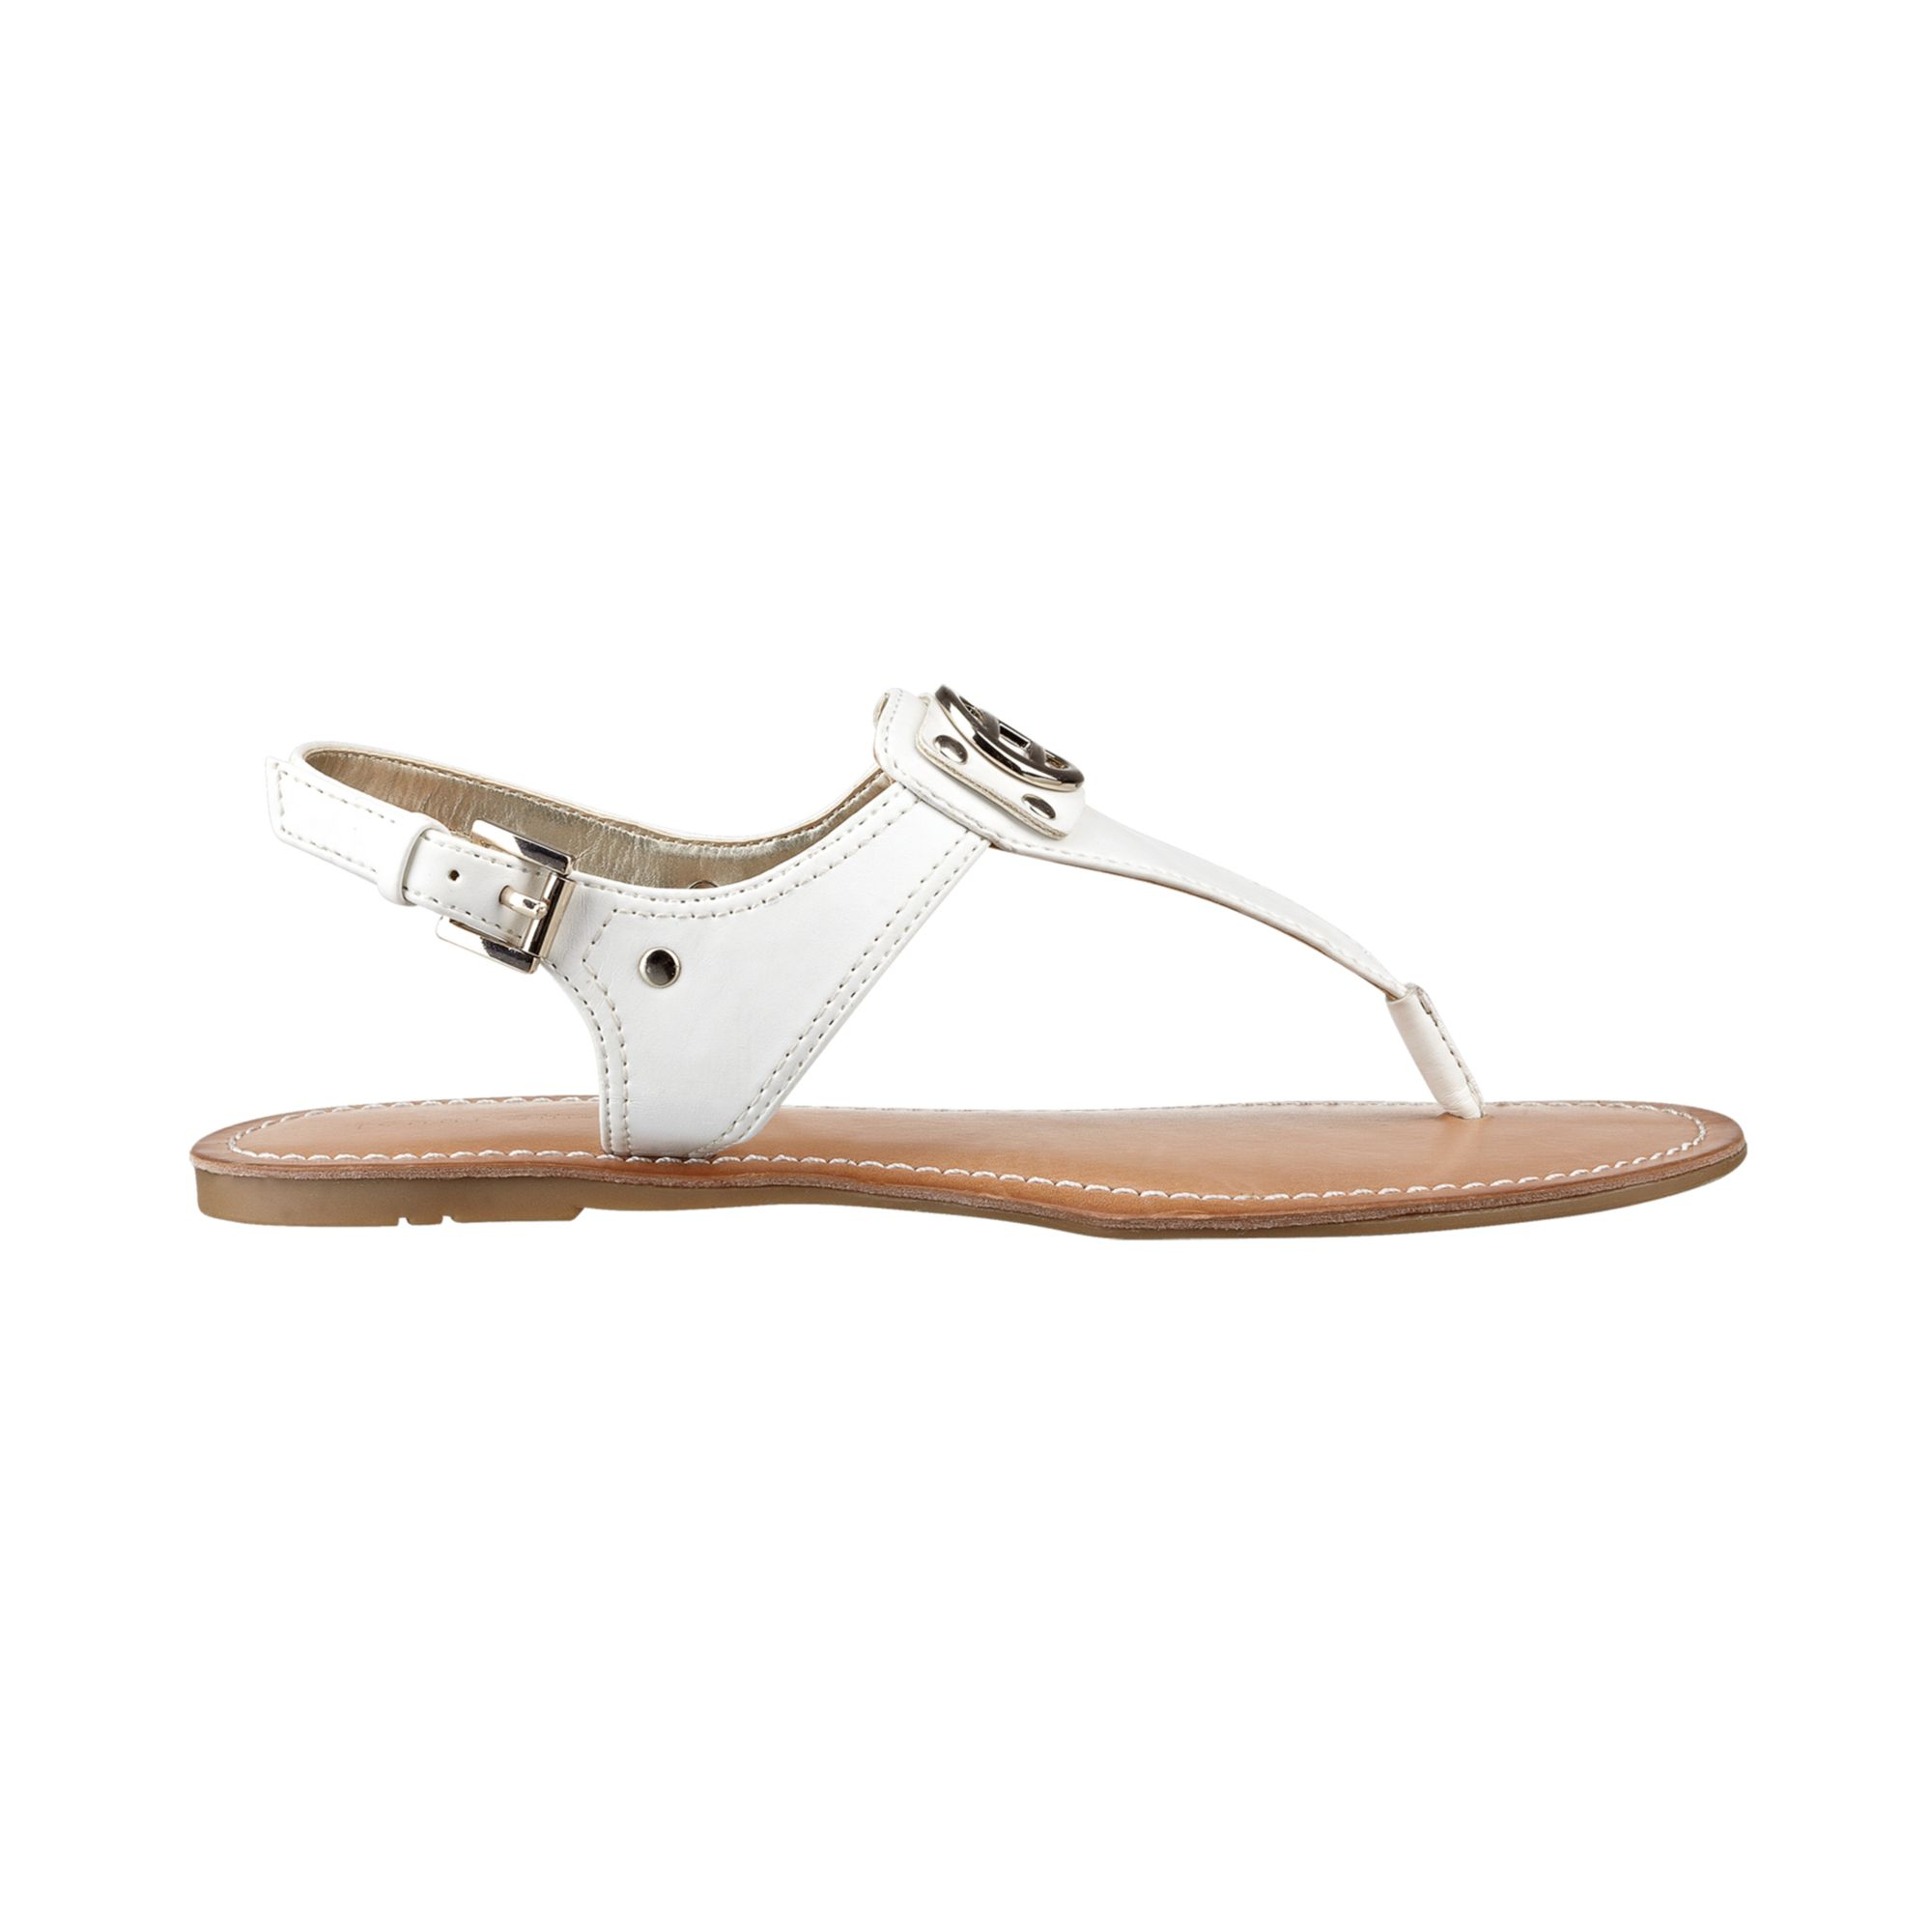 c8099d02358 Lyst - Tommy Hilfiger Womens Lolita Thong Sandals in White